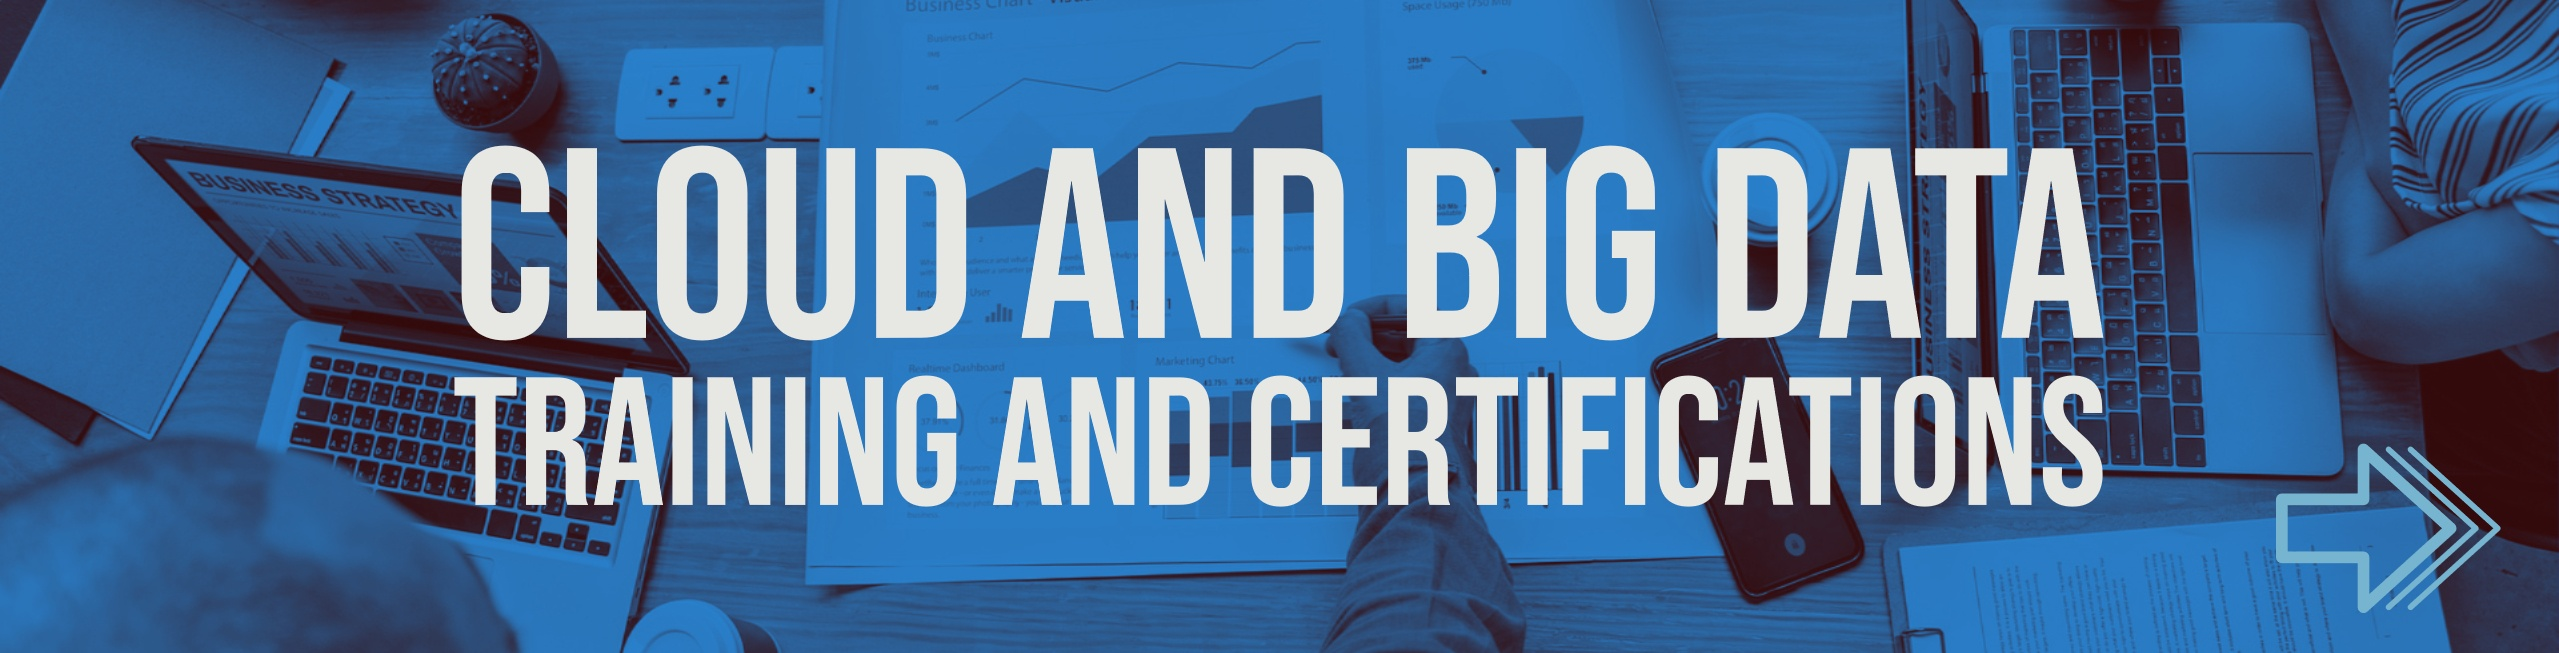 Cloud and Big Data Training and Certification at New Horizons